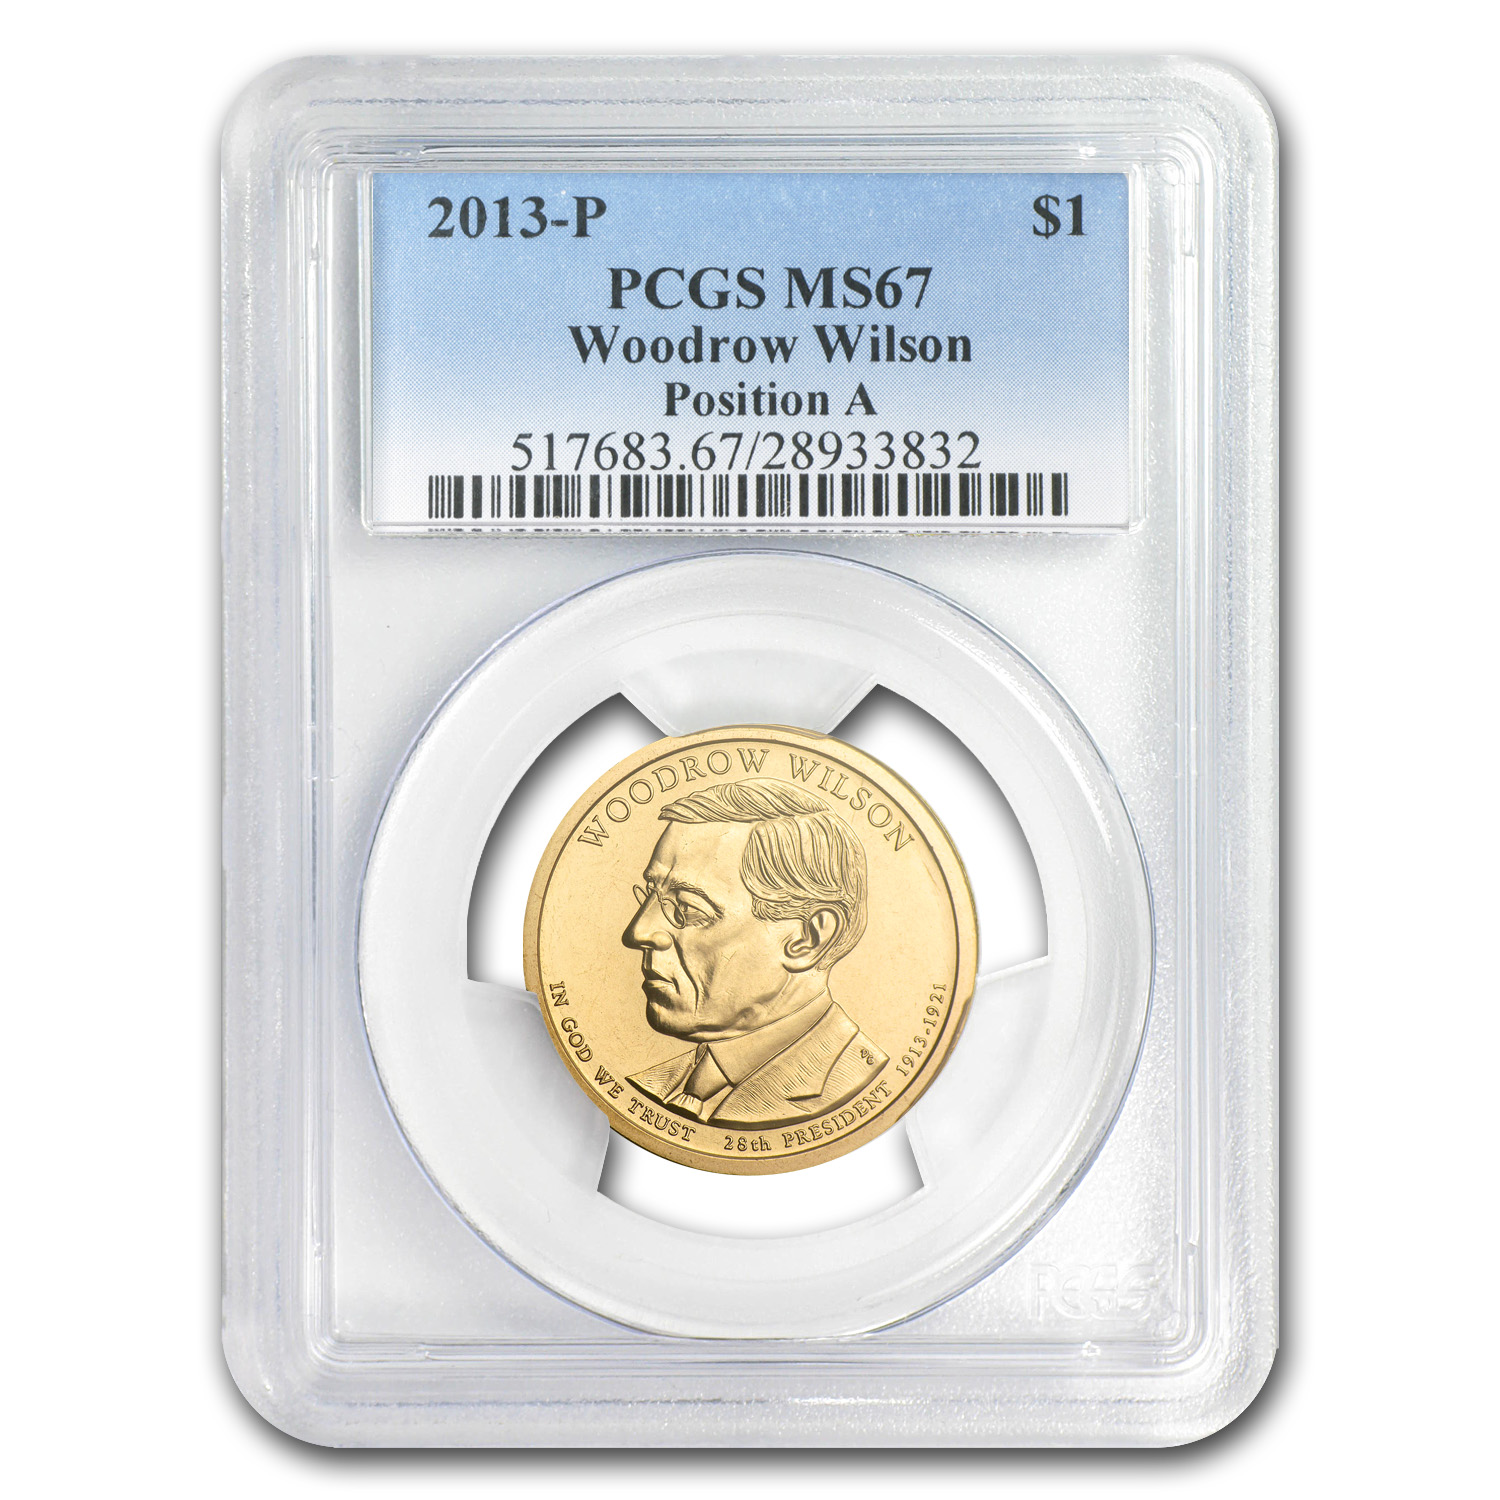 2013-P A Position Woodrow Wilson Presidential Dollar MS-67 PCGS